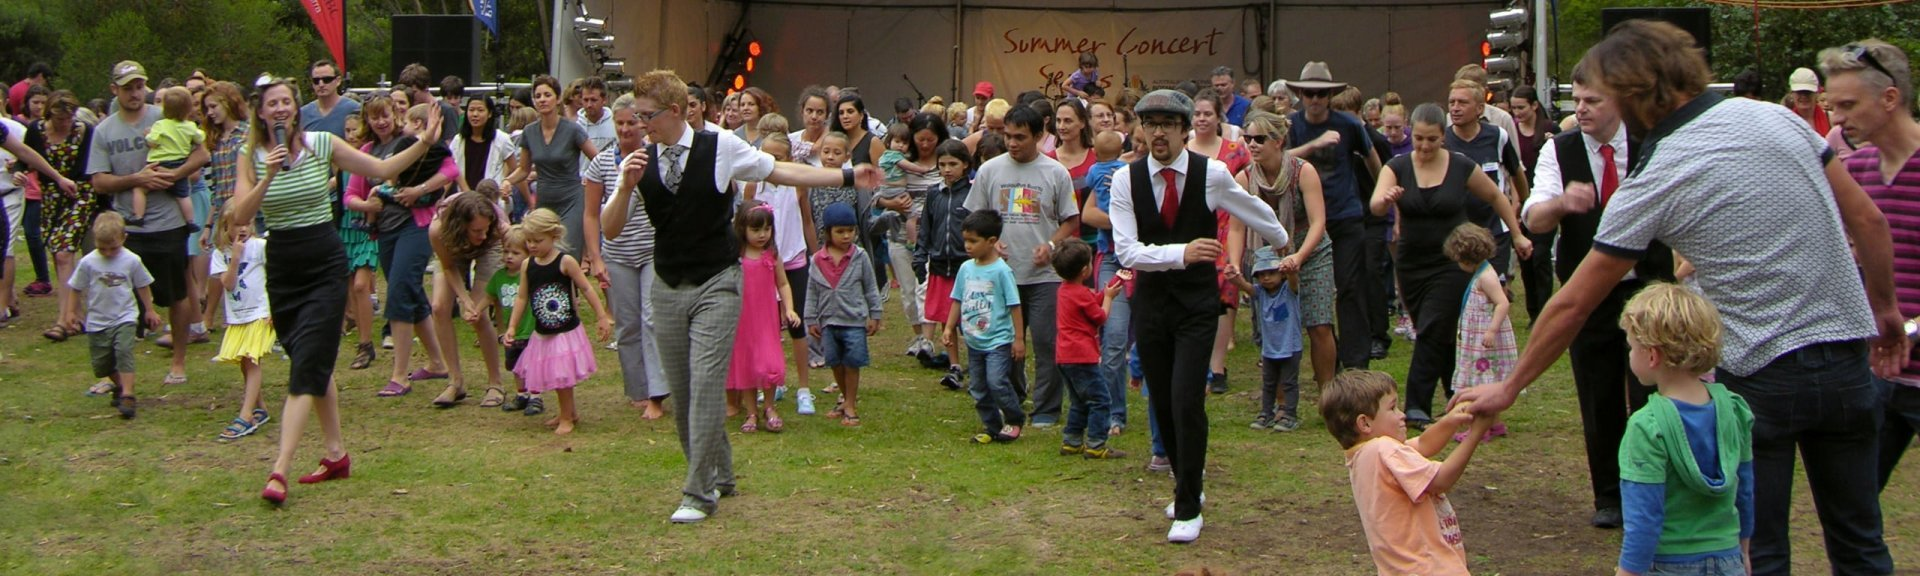 Canberra Swing Katz leading a dance at Summer Sounds